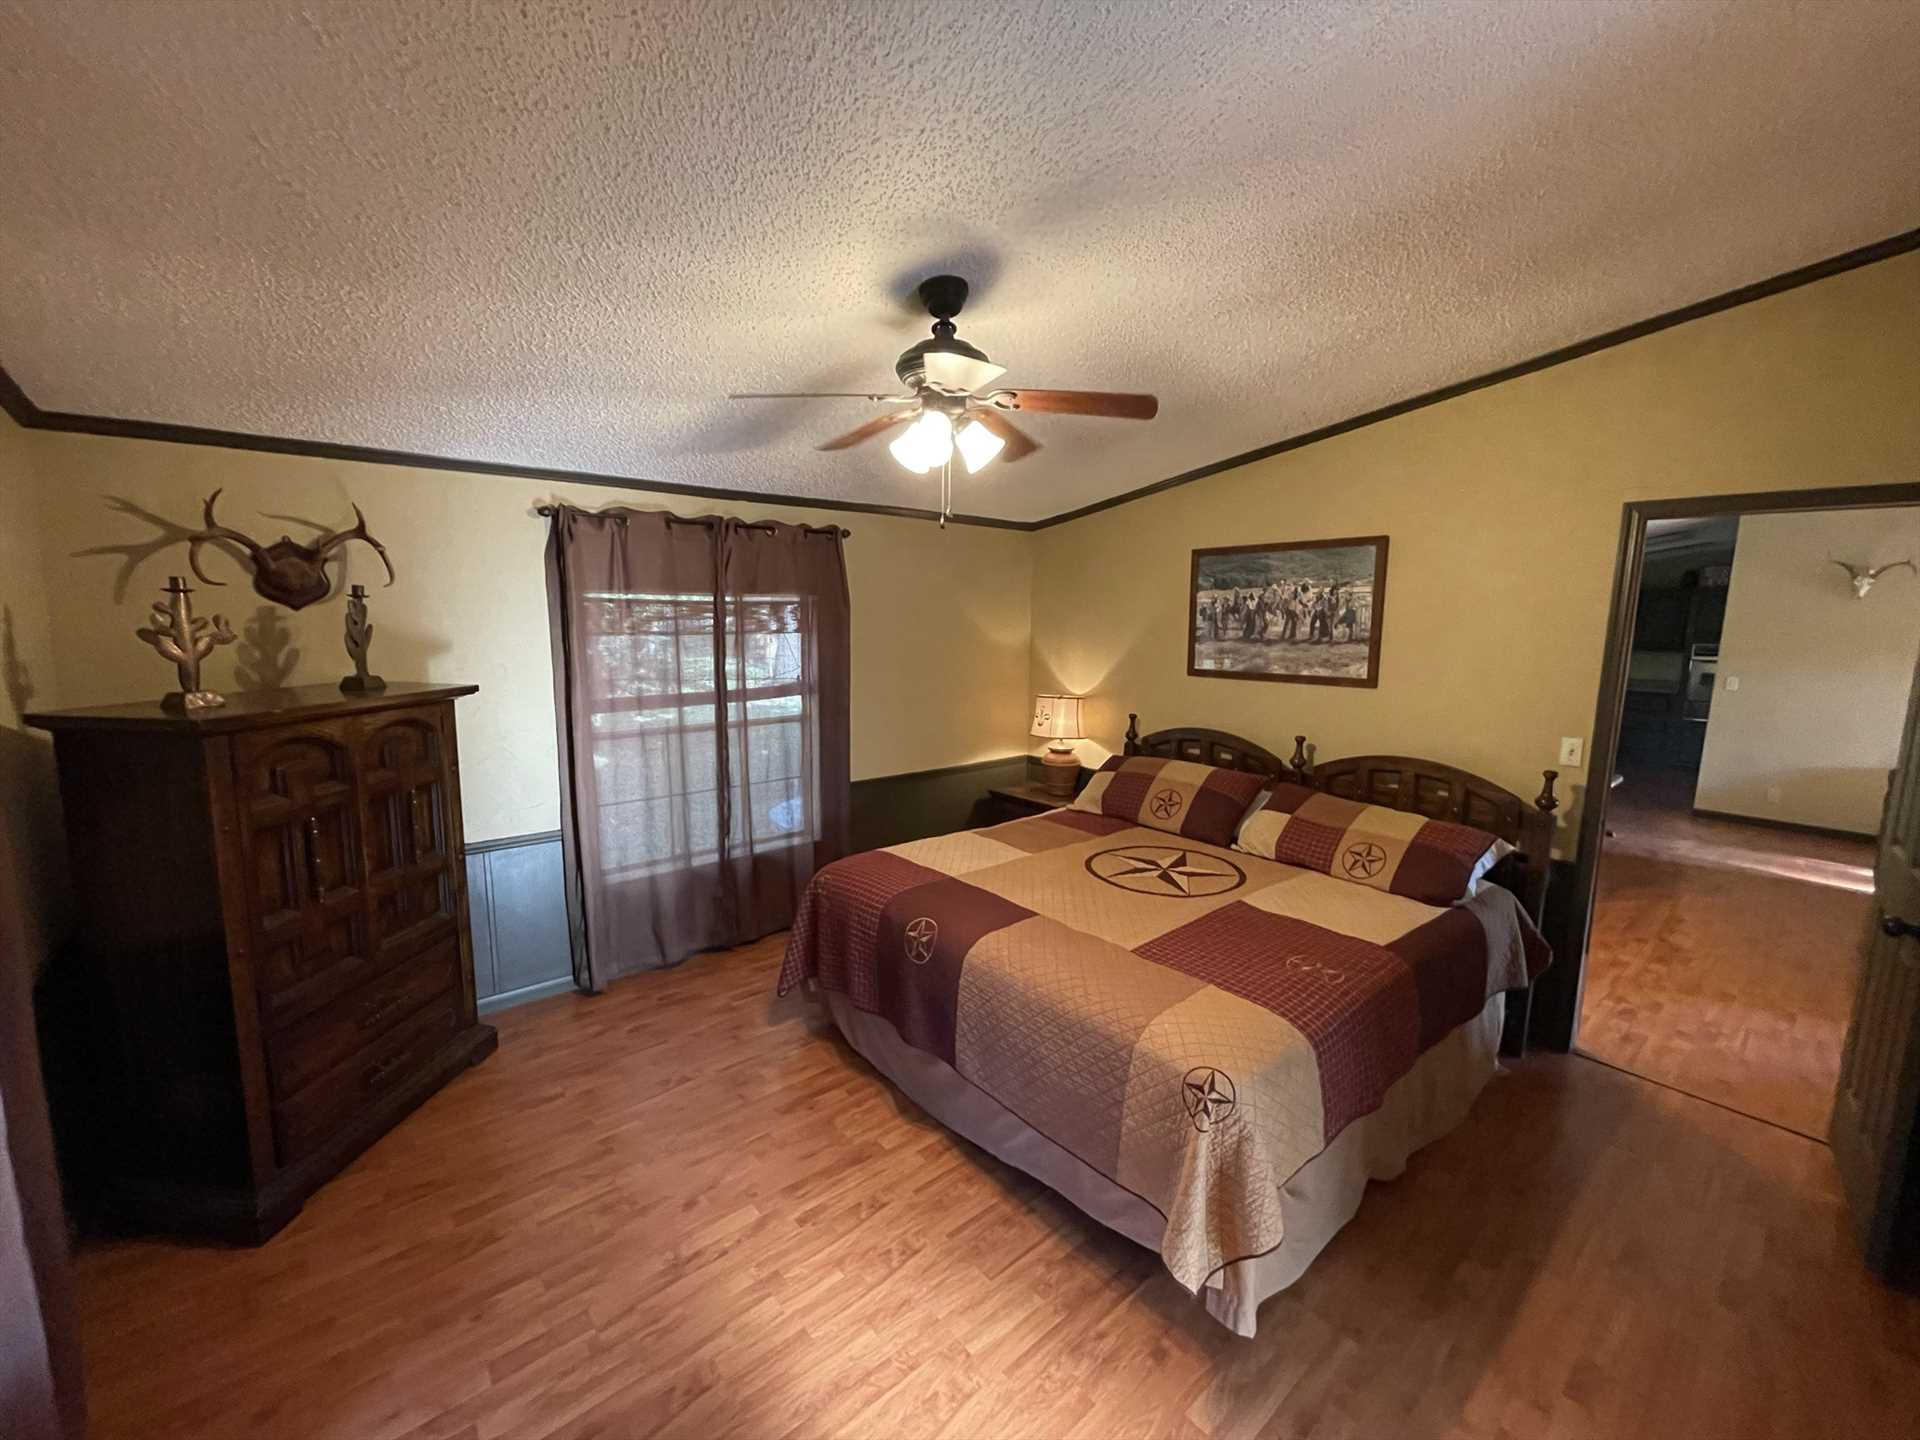 The first bedroom in Rio Vista is warmly decorated, and features a big, soft king-sized bed. Fresh bed and bath linens can be provided for a reasonable fee.